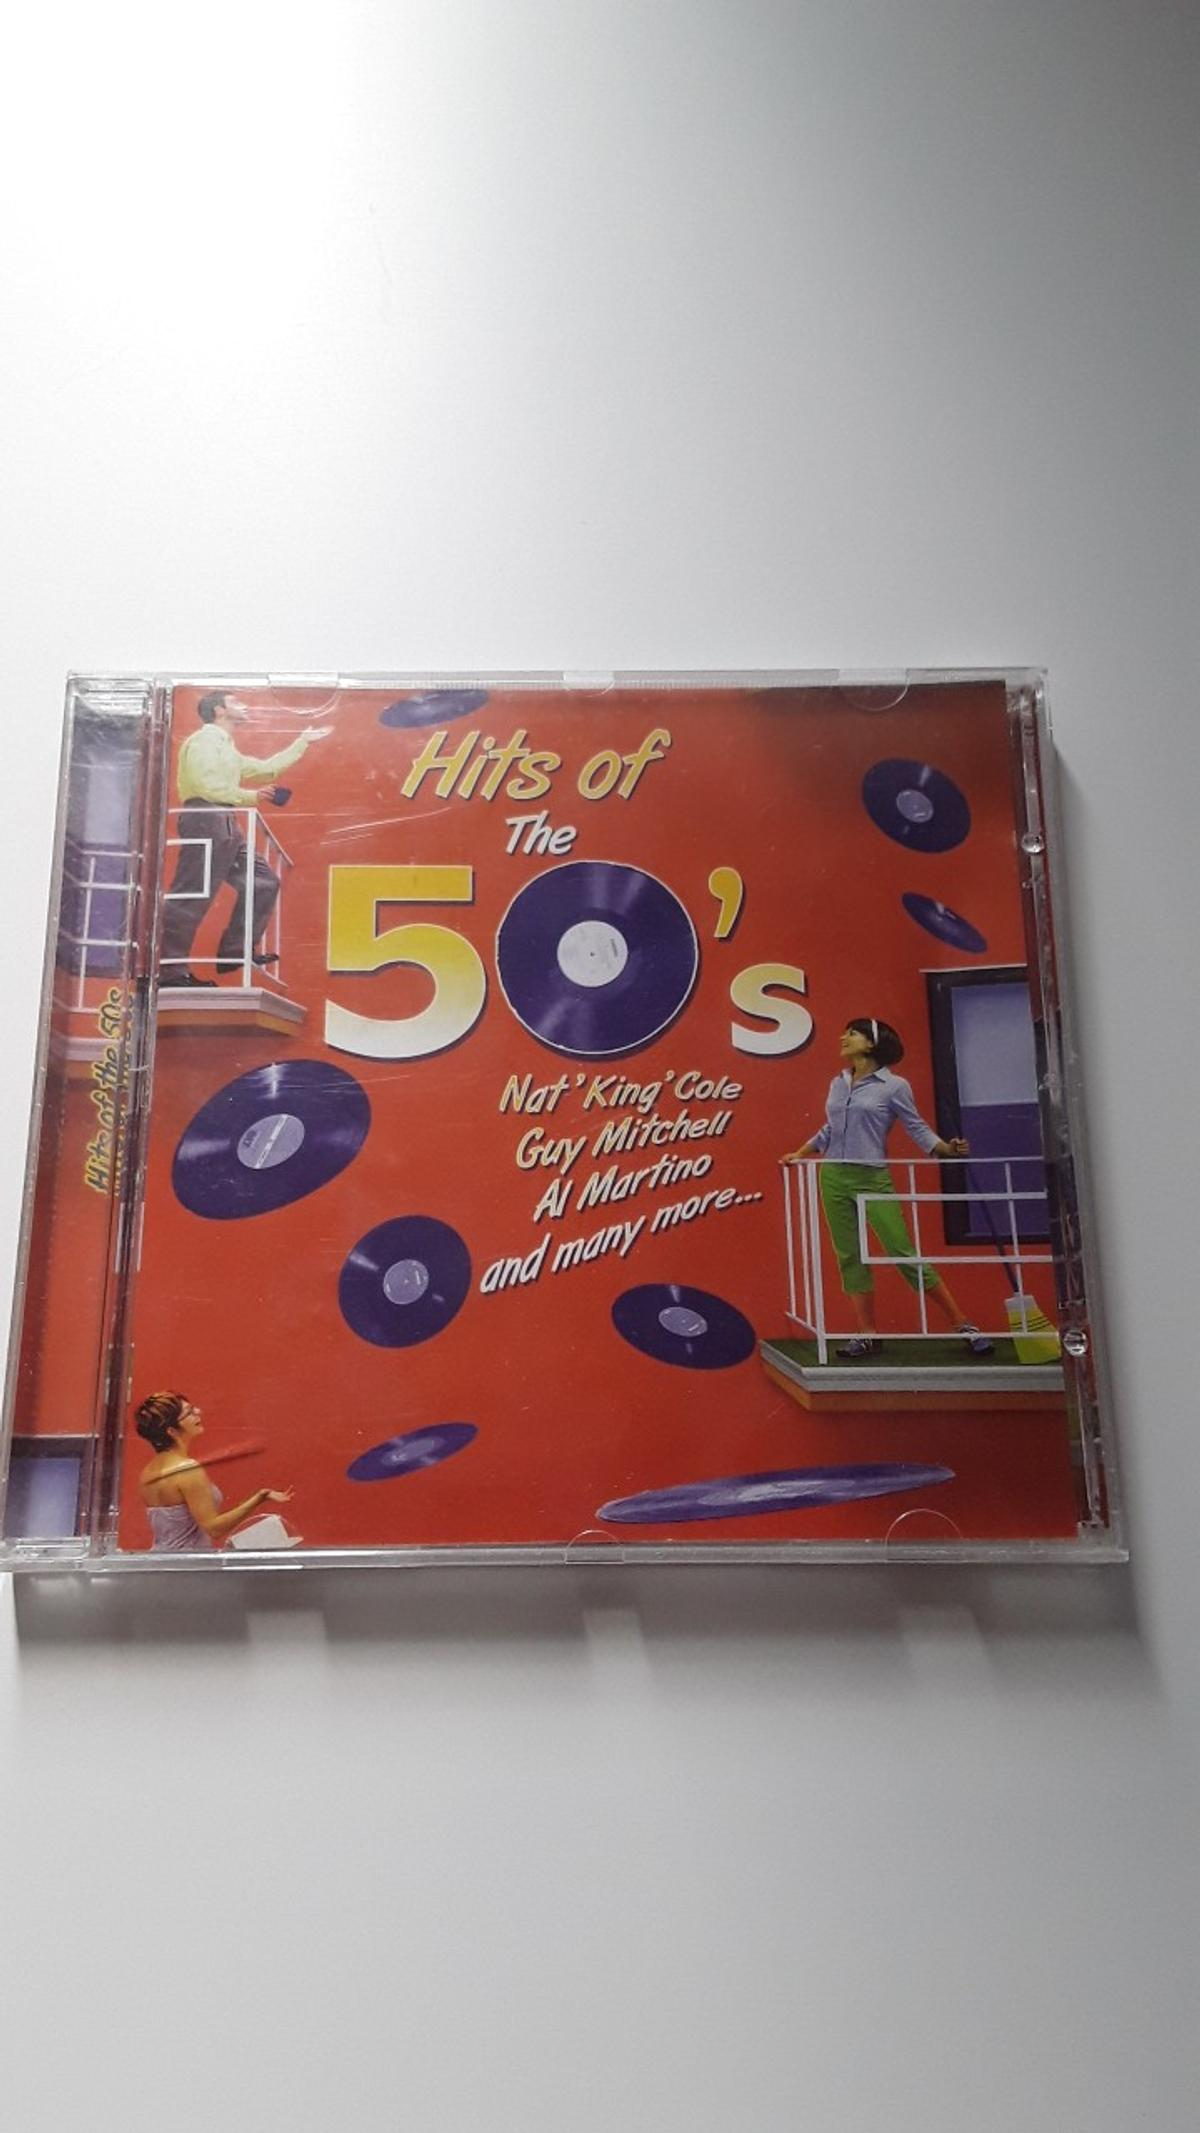 Contains 20 tracks by artists such as Nat King Cole, Guy Mitchell, Al Martino, Brenda Lee & many more.  Some scratches on the disc but still works great.  Available for collection and for post